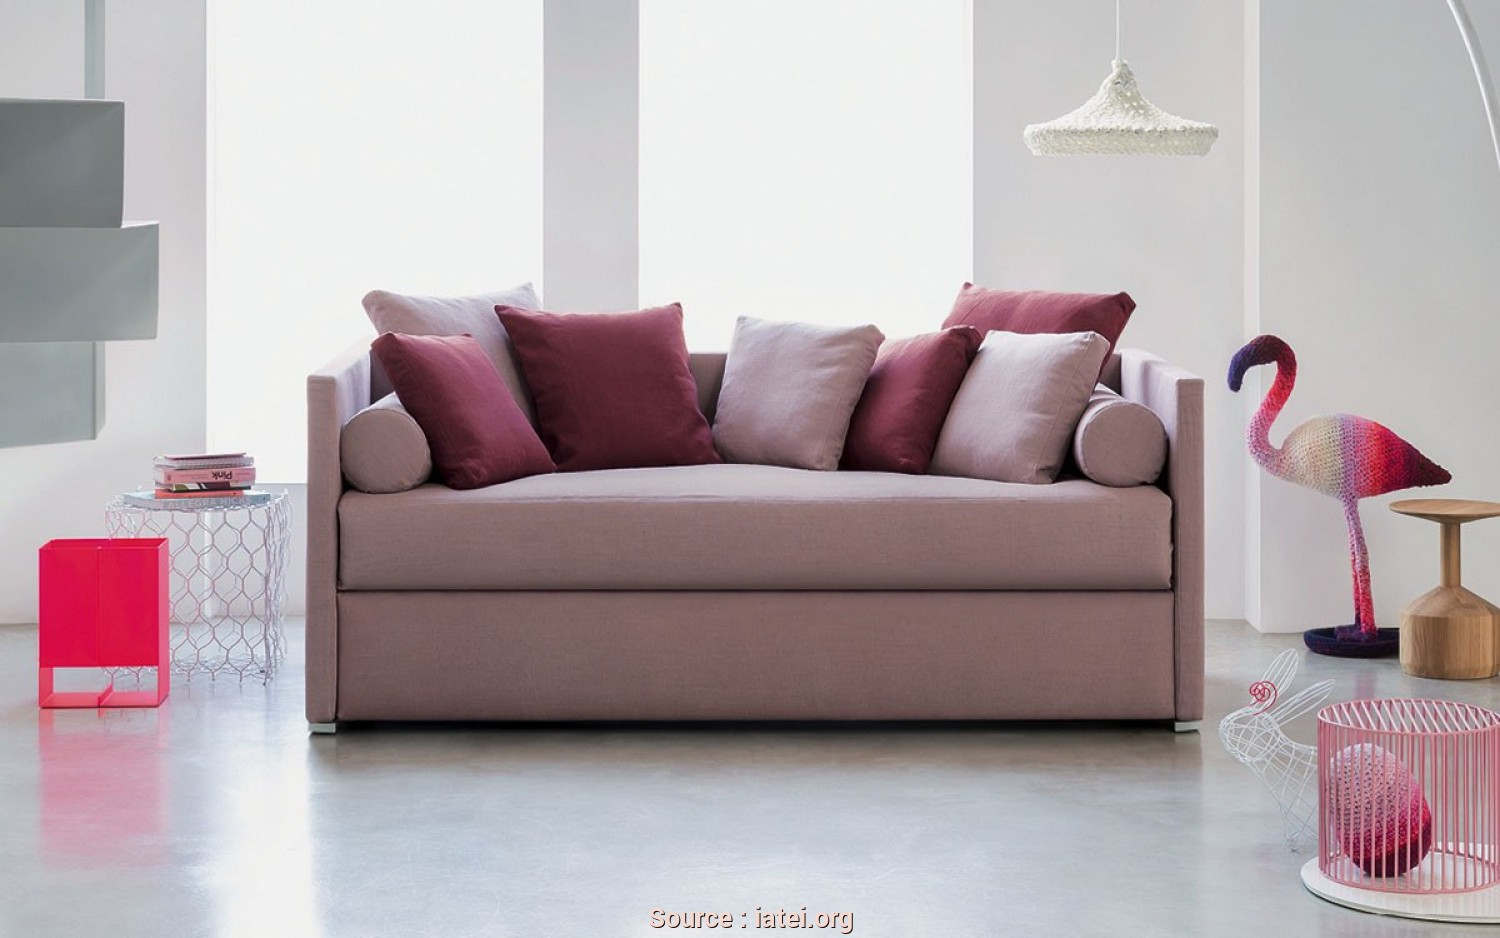 Poltrone E Sofa Viterbo, Divertente Poltrone E Sofa Viterbo Più Recente Letto Biss Flou Flou Of Bello Poltrone E Sofa Viterbo